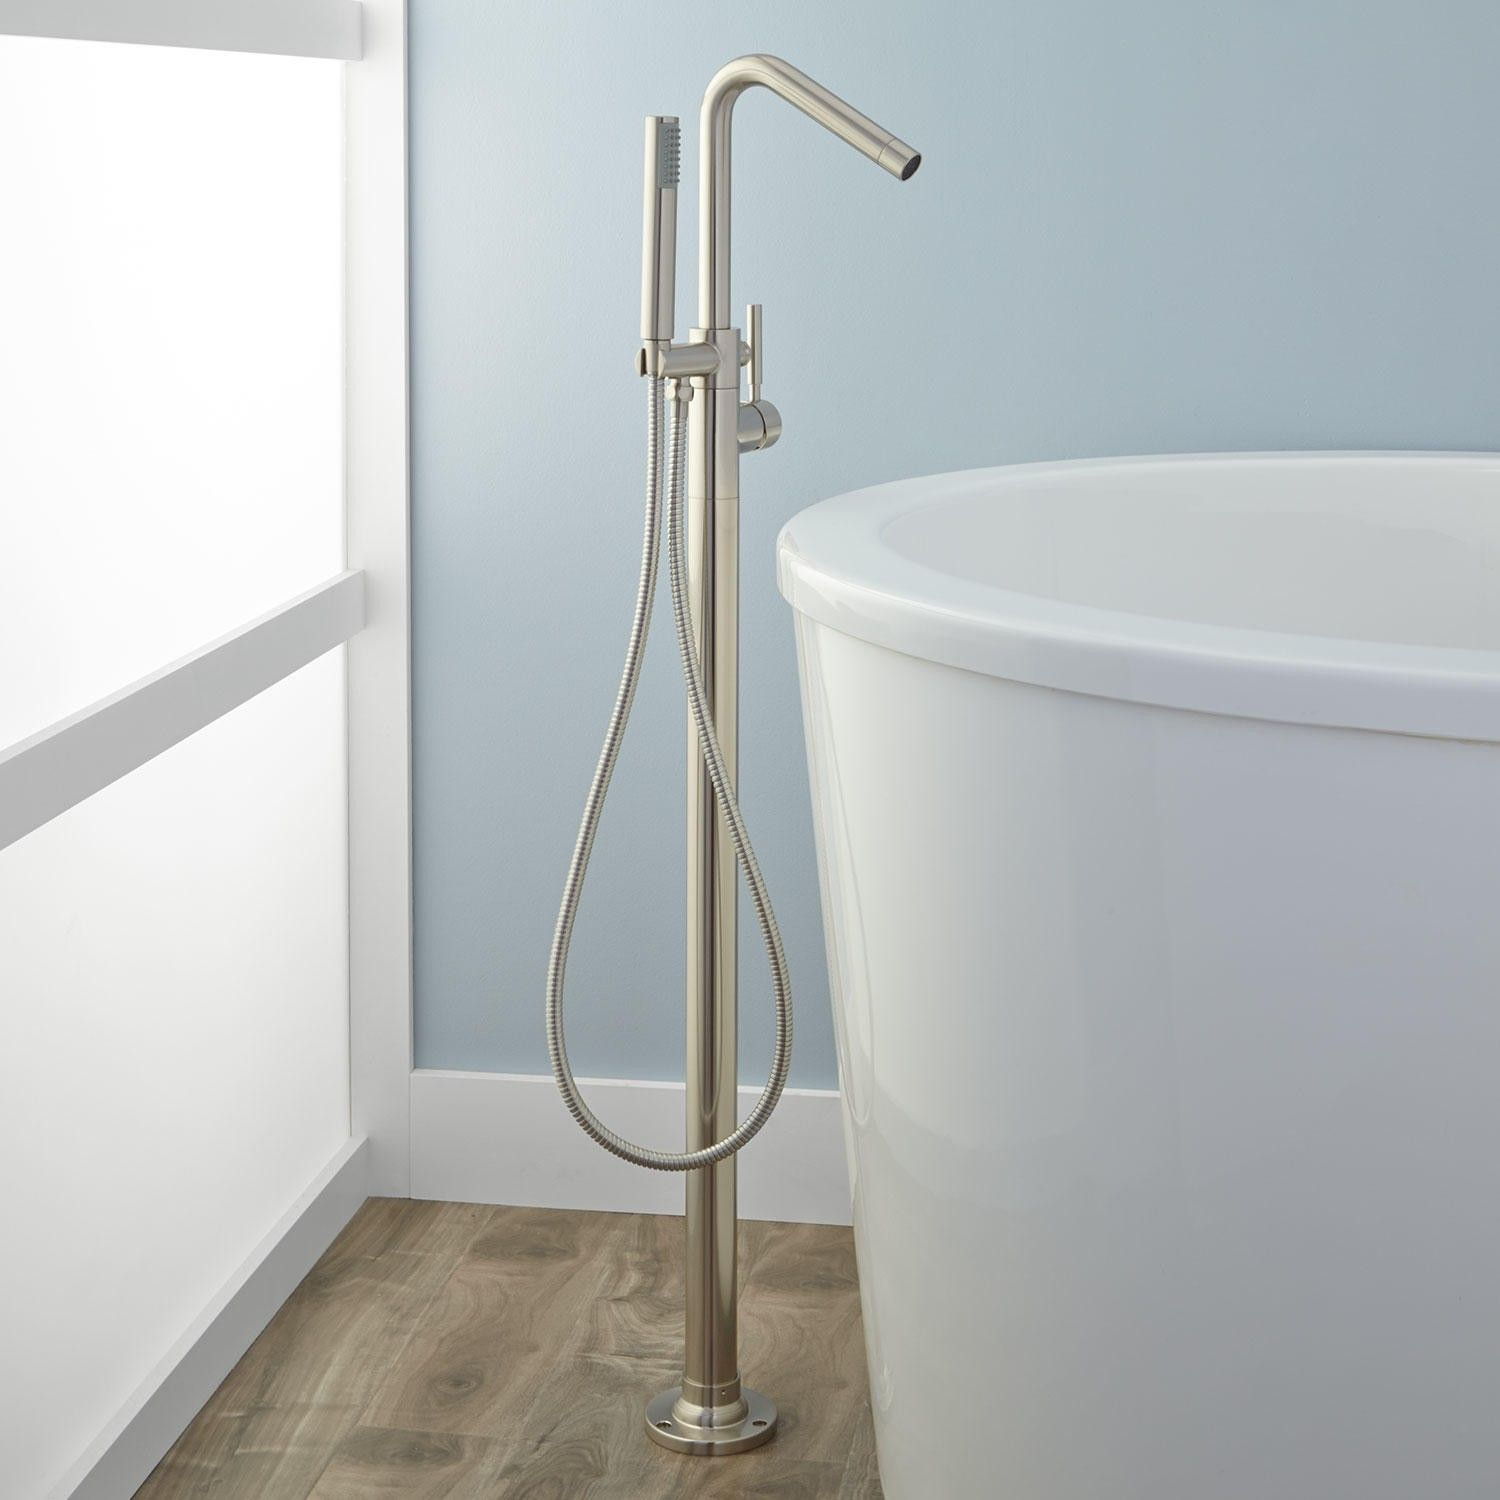 Cavalier Freestanding Tub Faucet and Hand Shower | Freestanding tub ...